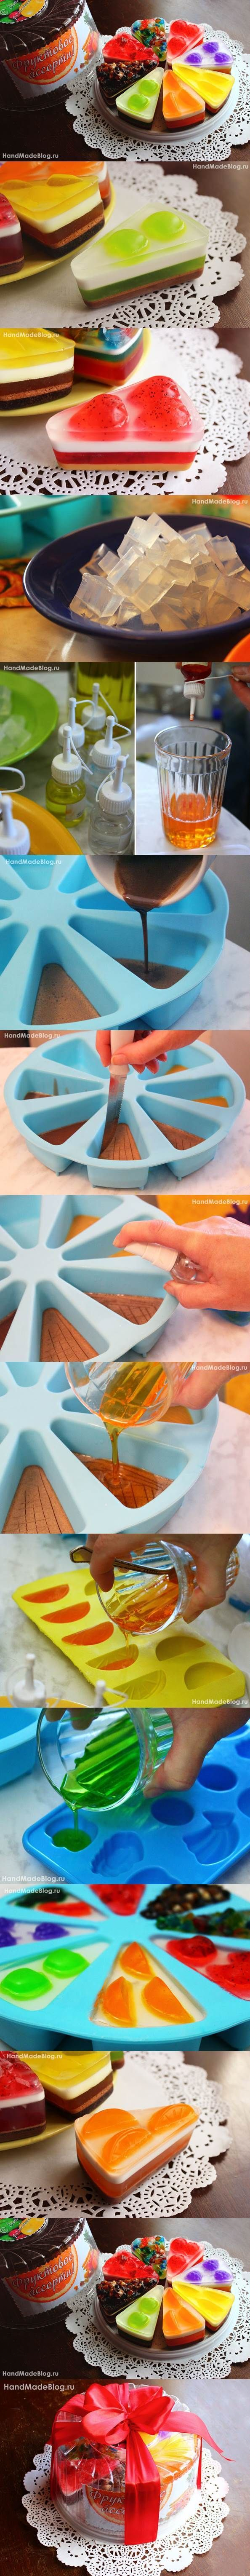 DIY Beautiful Cake of Soap #craft #soap